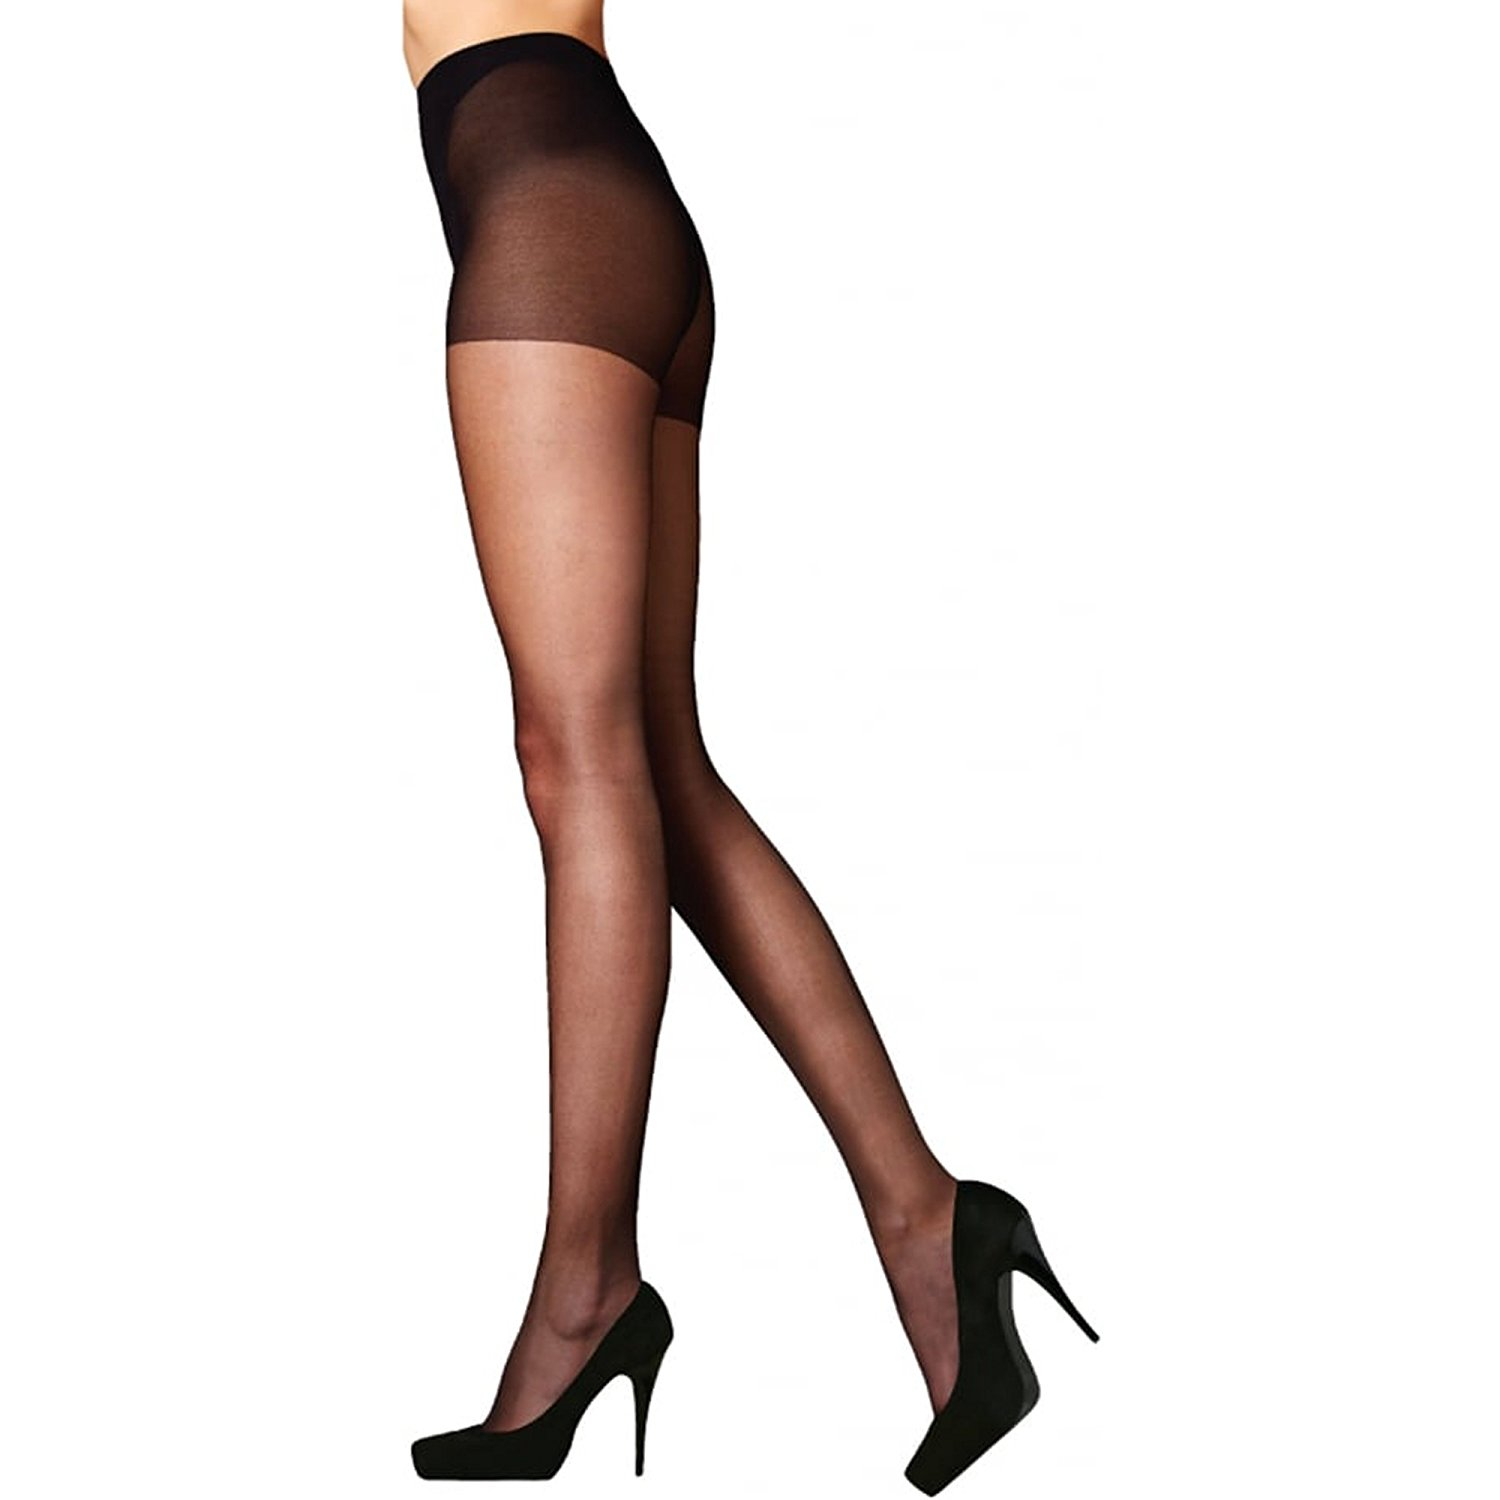 a7d2914be6ec6 Cheap Pretty Legs Tights, find Pretty Legs Tights deals on line at ...